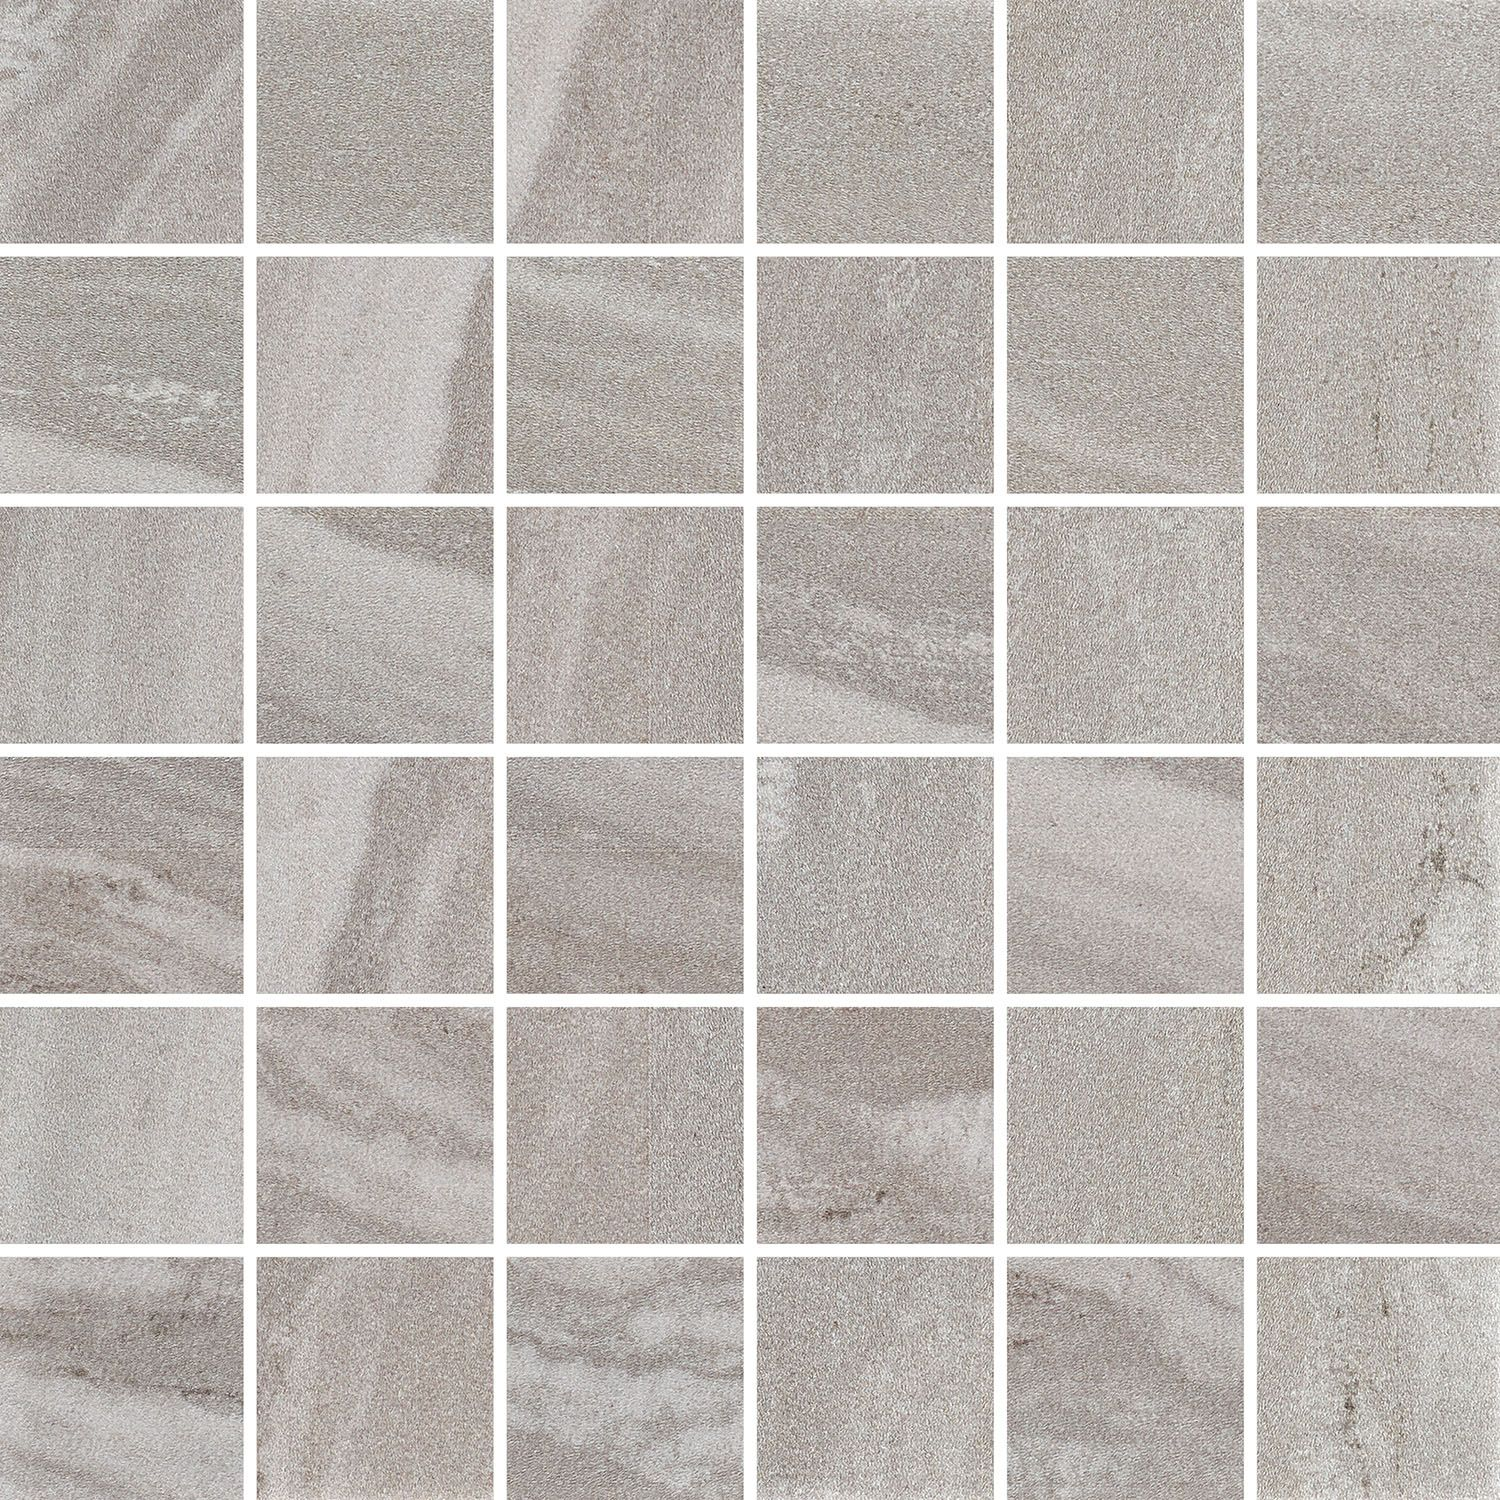 The Destiny Range Features A Mosaic Tile That Co Ordinates Perfectly With The Porcelain Wall And Floor Tiles Mosaictiles Na Tiles Doll House Flooring Mosaic